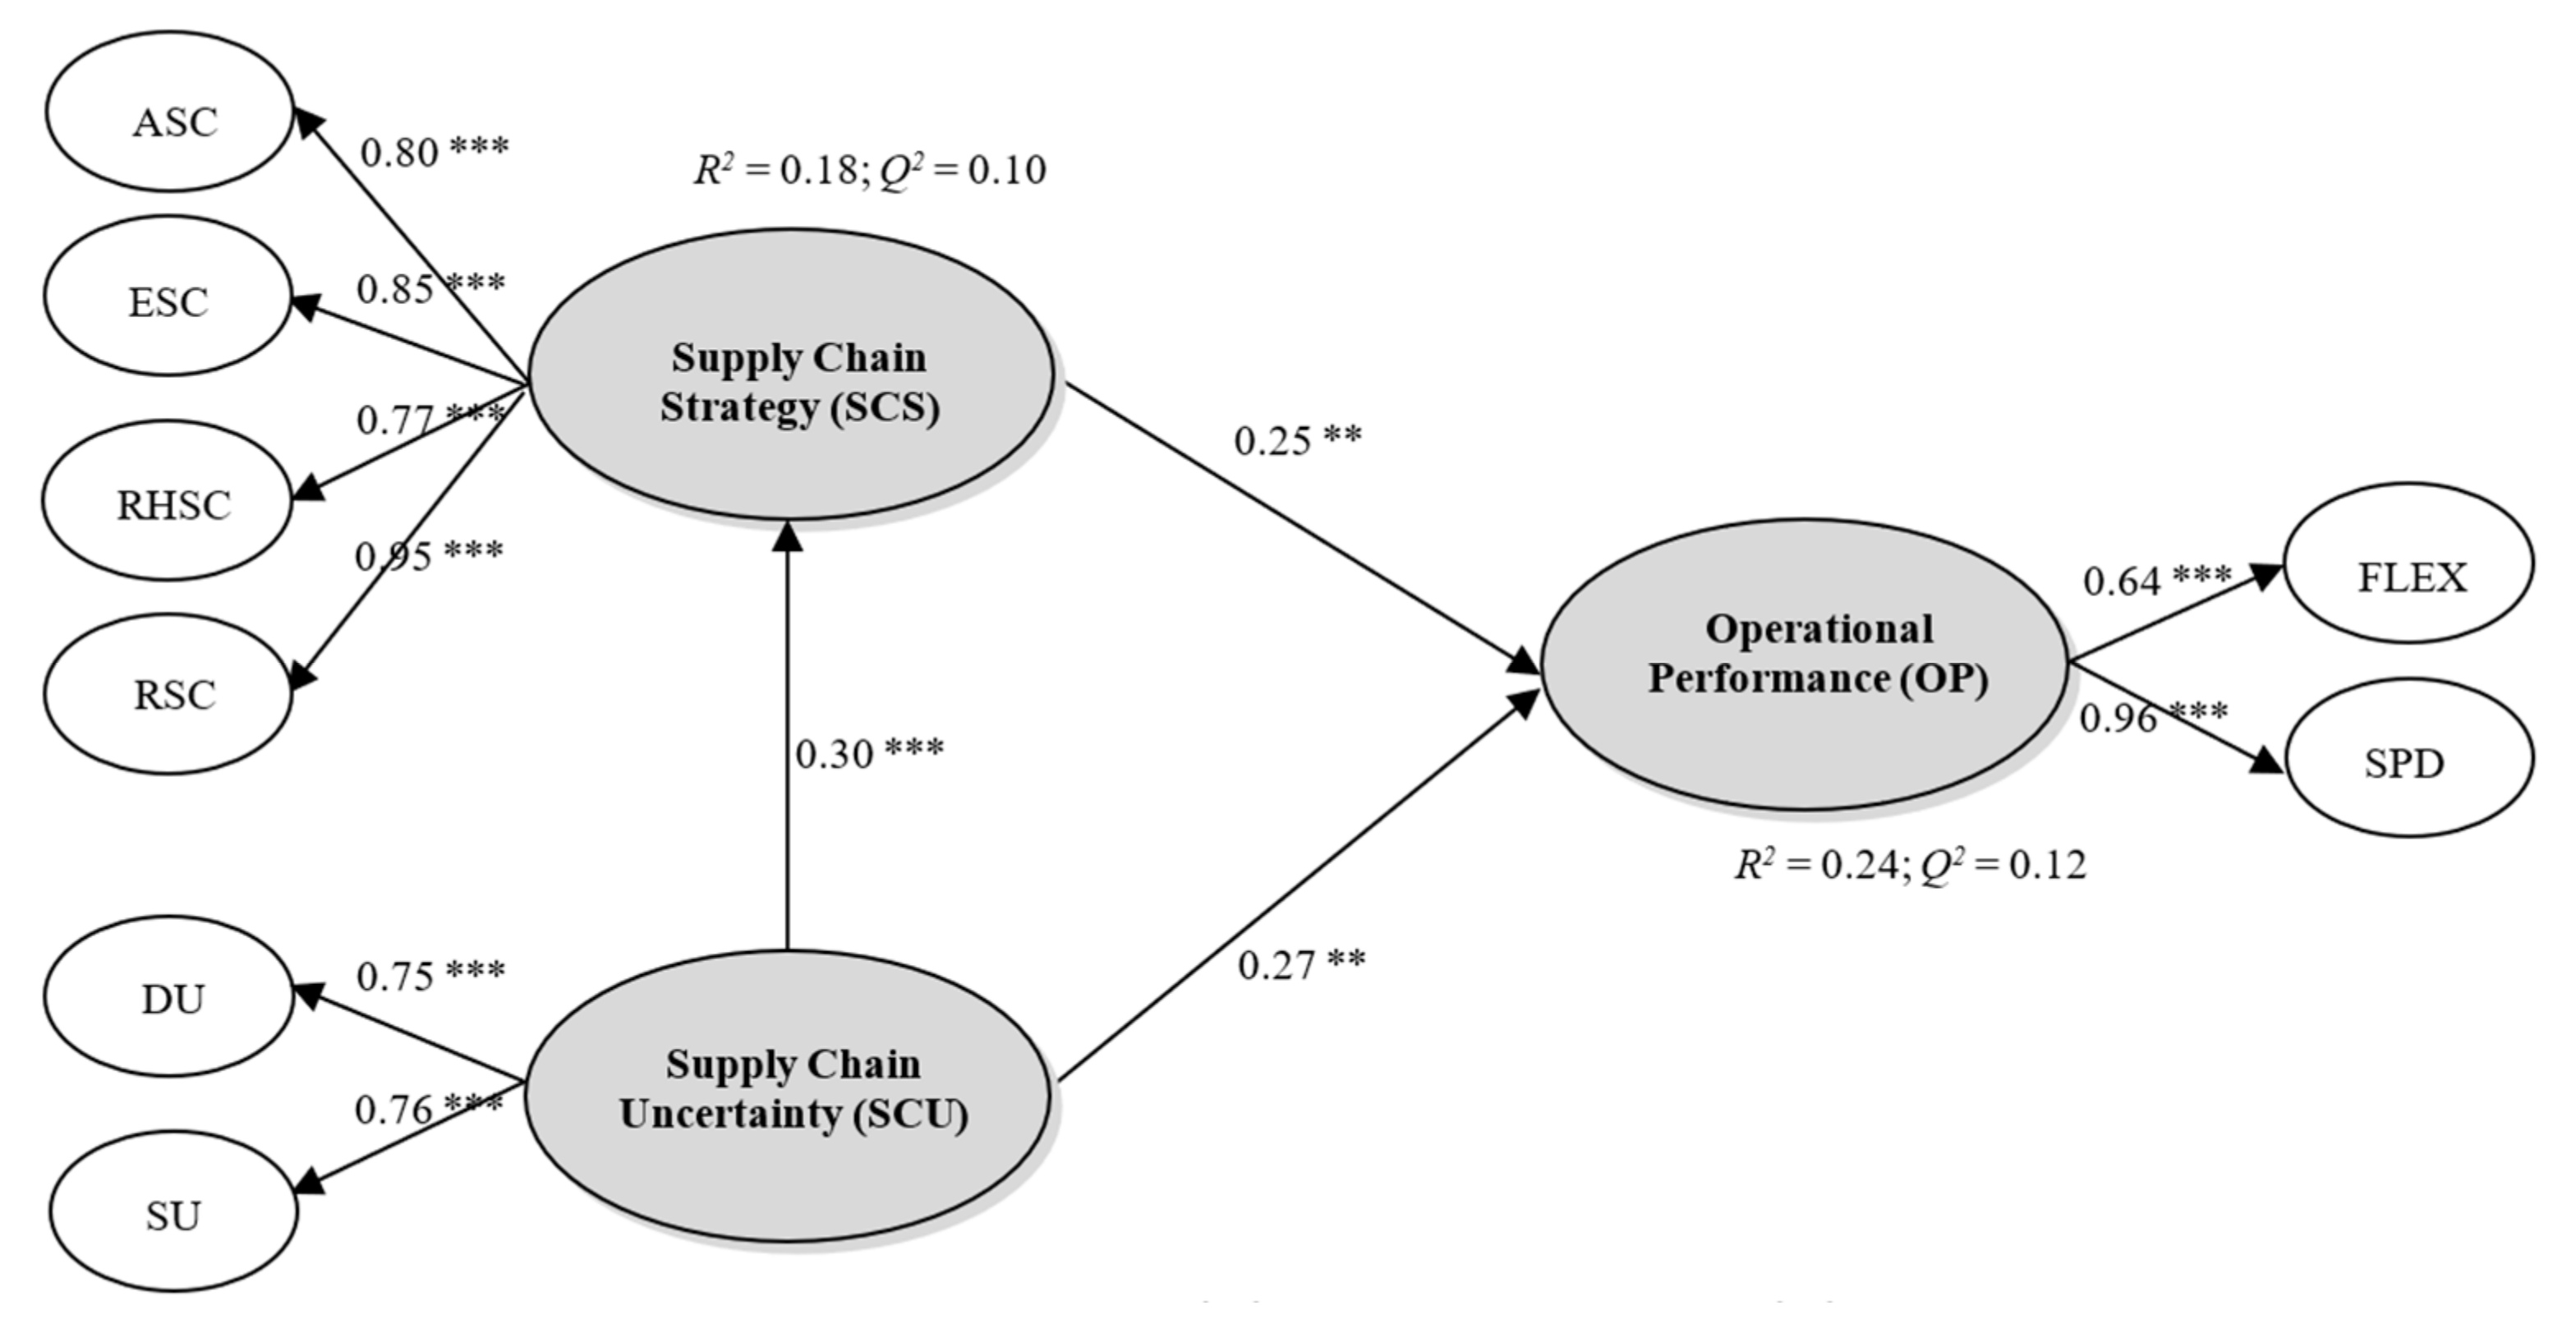 a study on resource dependence theory This study supports resource dependence theory that boards of directors serve as a linking mechanism between companies and their stakeholders, and that they provide legitimacy to different stakeholders or groups within our society.